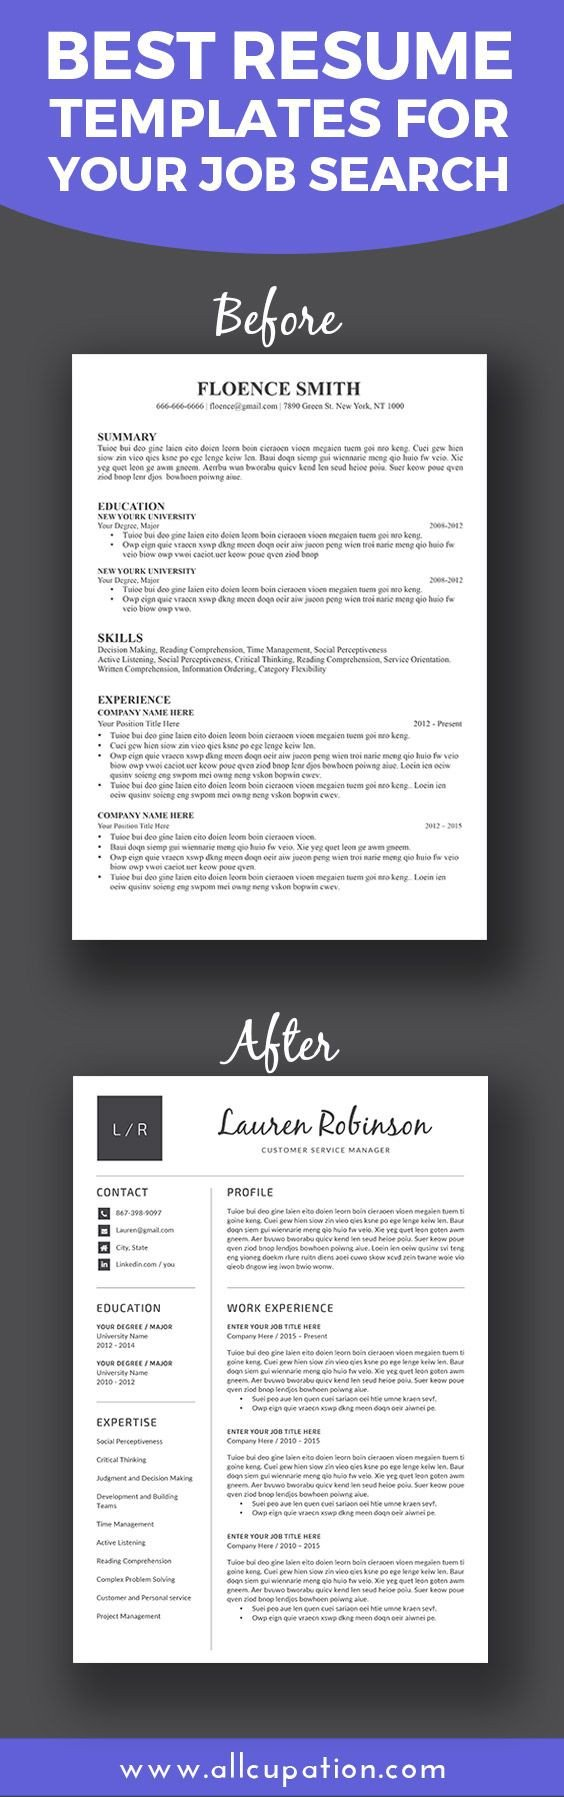 Job Posting Template Word Best 25 Best Resume Template Ideas On Pinterest